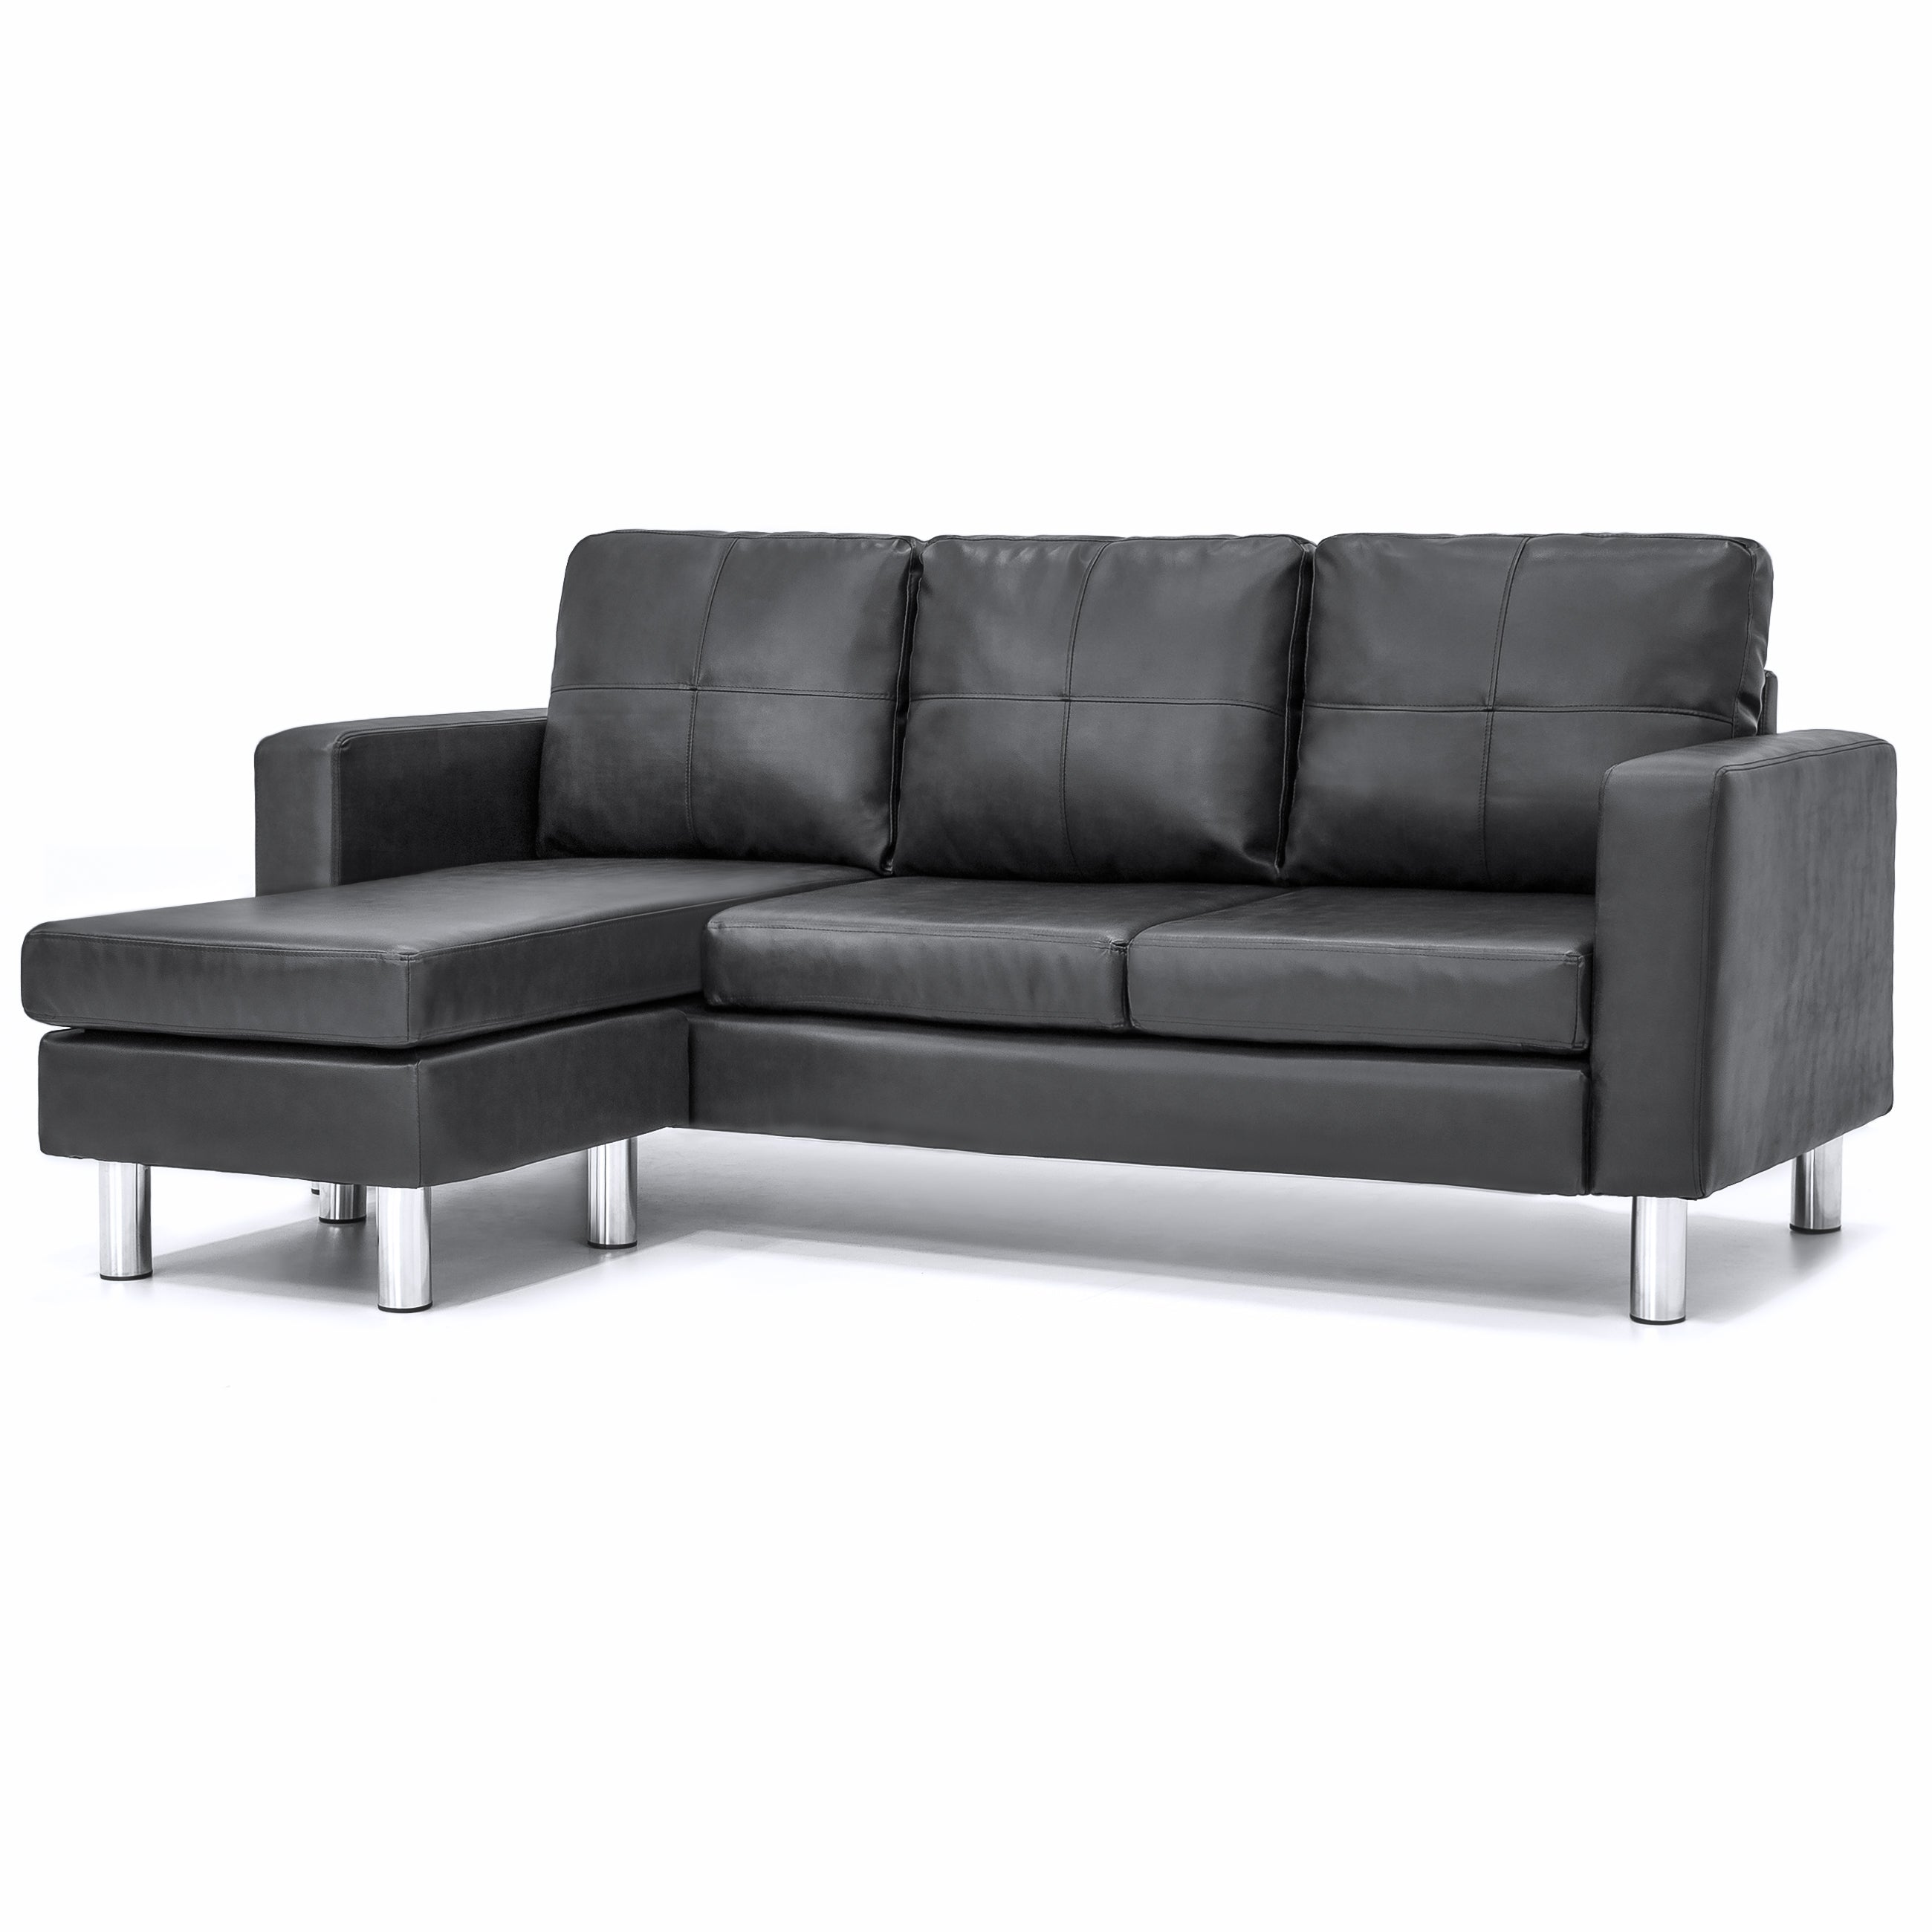 Leather L-Shape Sectional Sofa Couch w/ Reversible Chaise Ottoman - Black